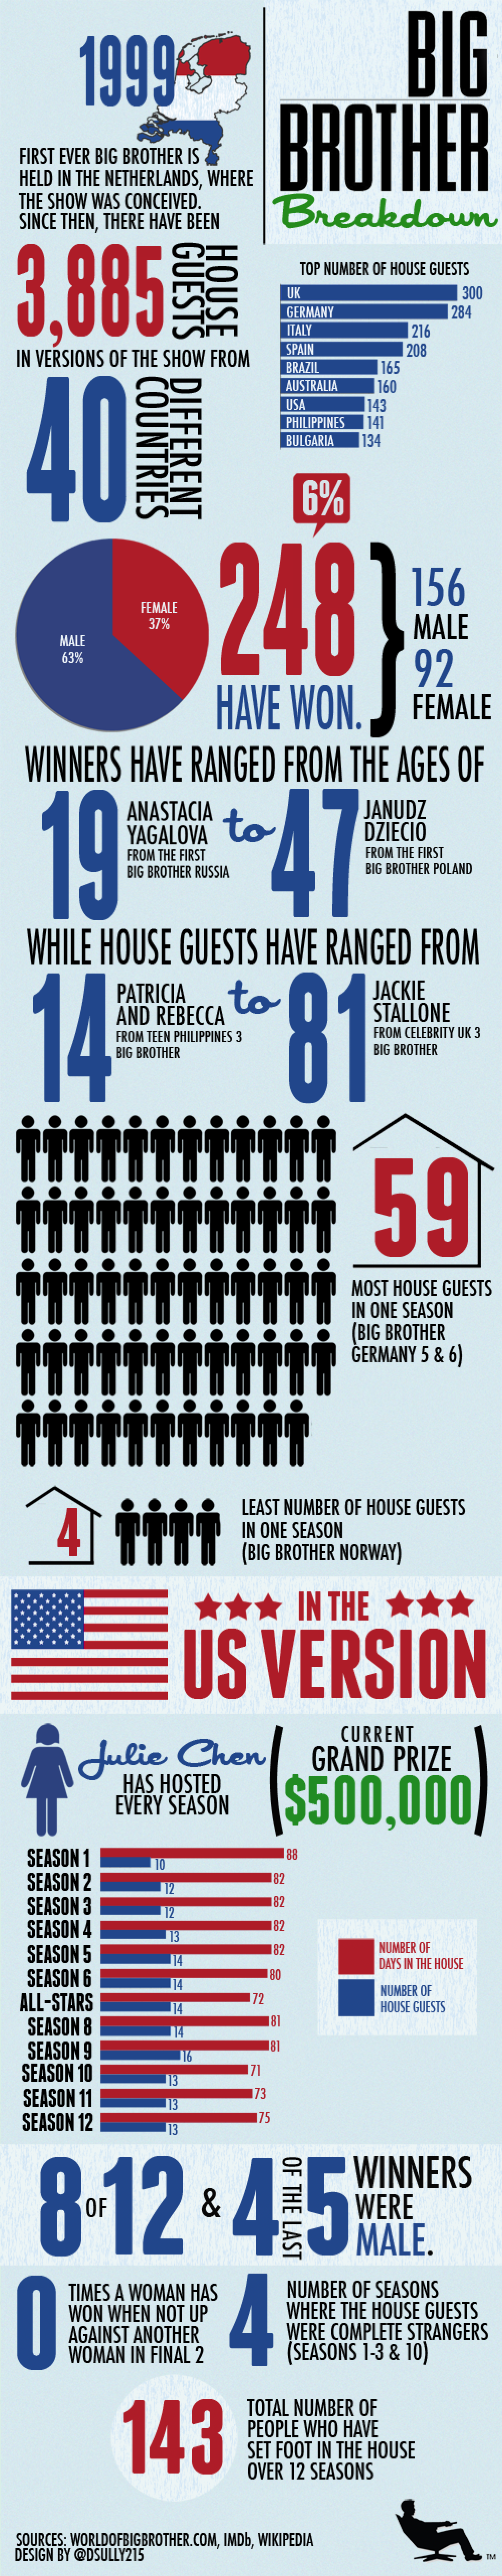 Big Brother Breakdown Infographic